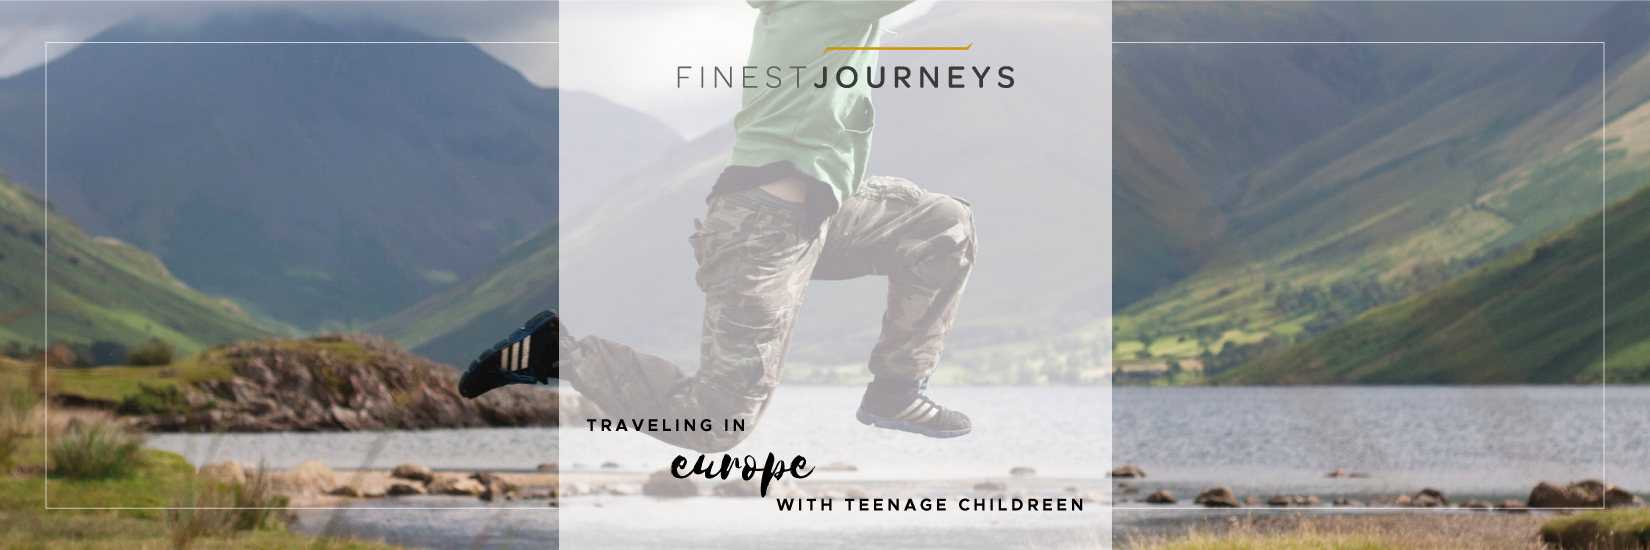 IMG : Traveling in Europe with Teenage Children